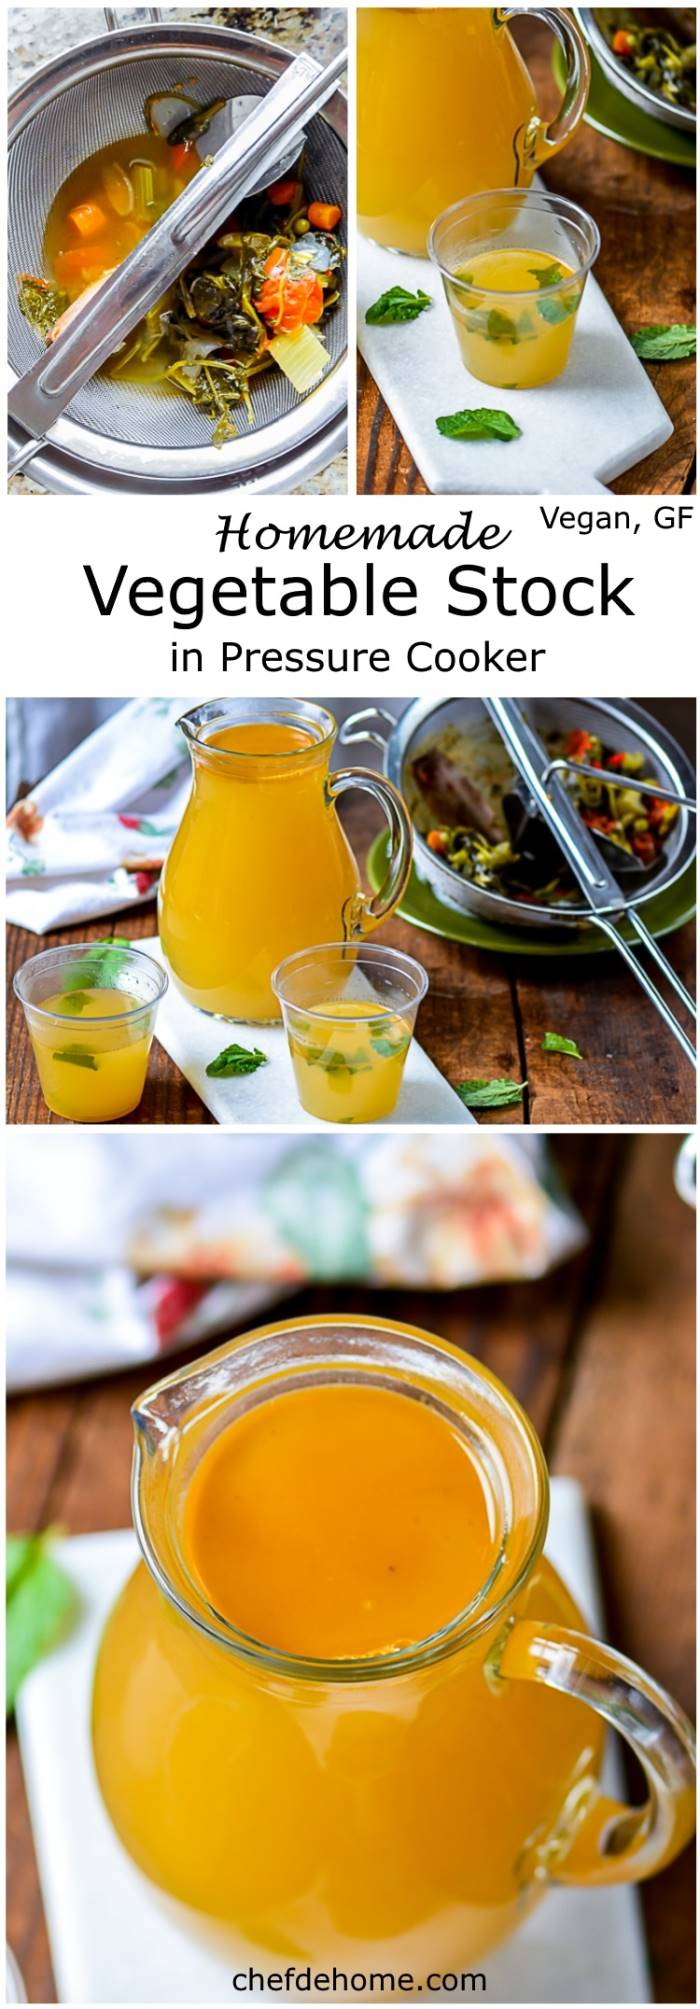 Homemade Vegan Vegetable Stock cooked in just 20 minutes in pressure cooker. Perfect to flavor soup and great health toniic with low sodium and almost negligible fat | chefdehome.com